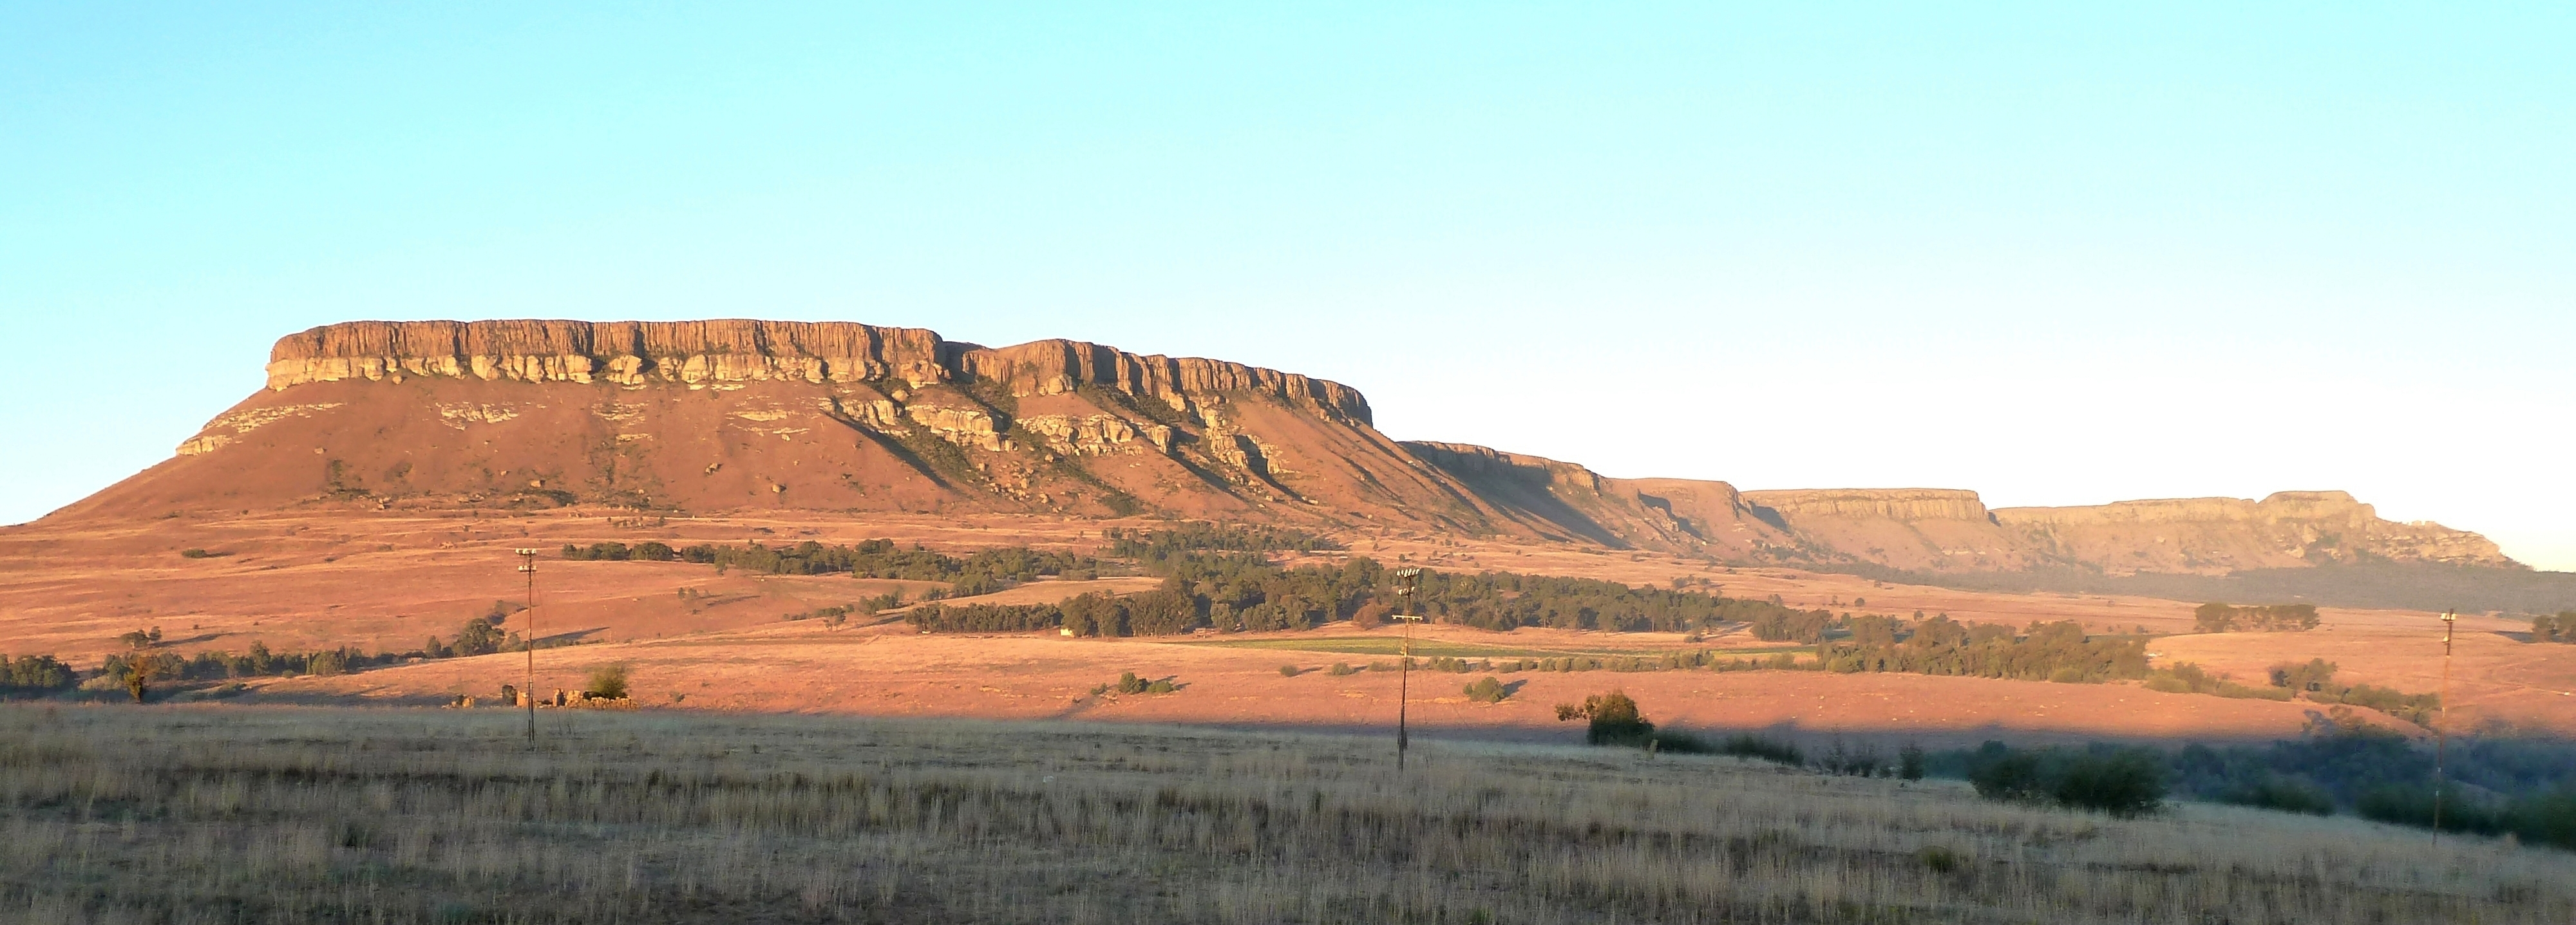 Harrismith South Africa  City pictures : Platberg, Harrismith, a Wikimedia Commons